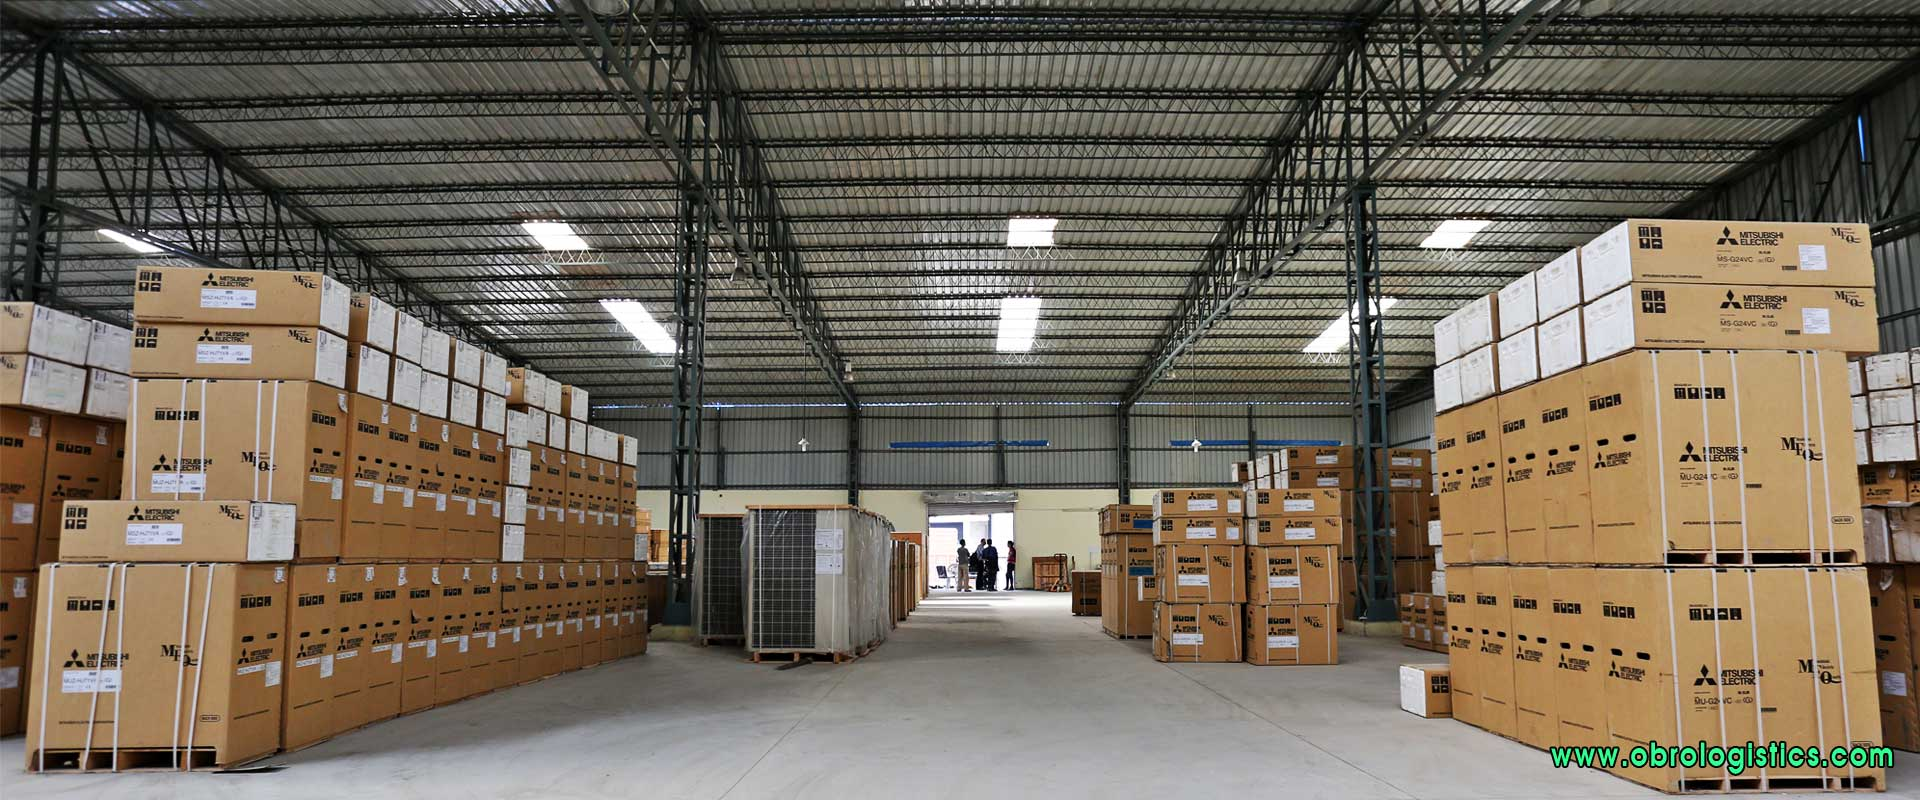 warehouse on rent lease godown space on rent lease logistics park commecial shed space for rent lease in ludhiana punjab india